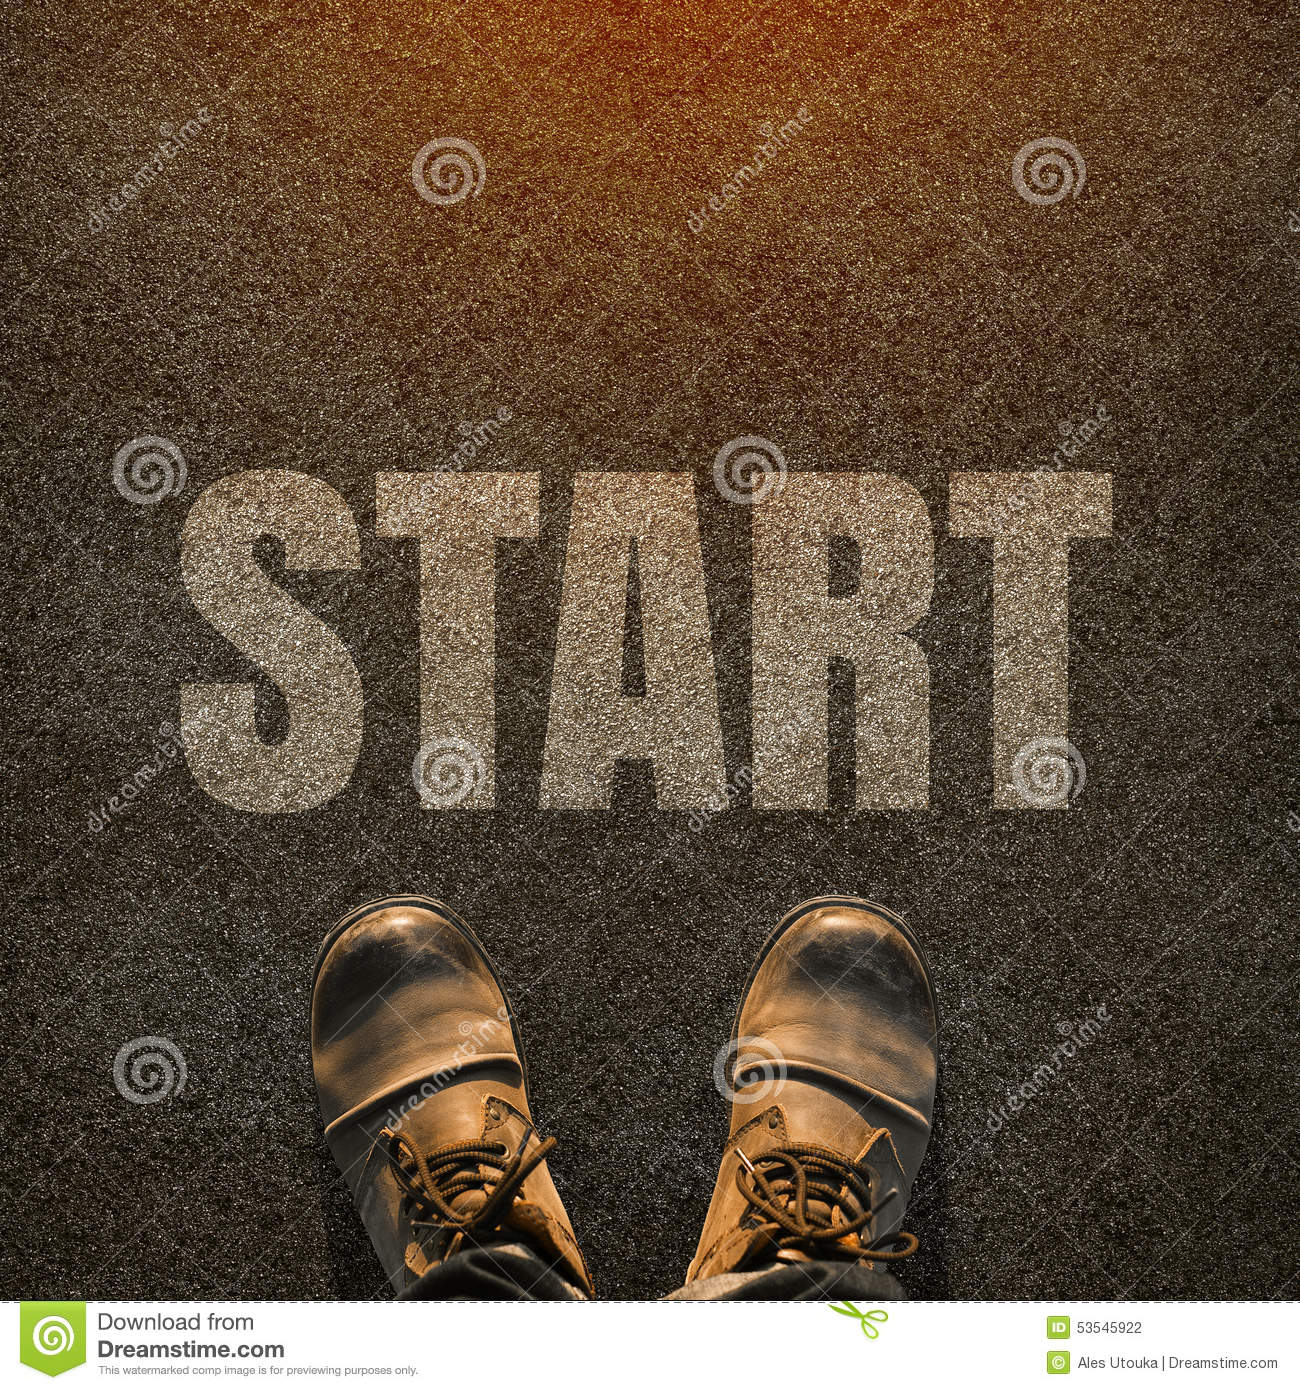 5 letter words starting with sta a pair of on a tarmac road with white print of the 26066 | pair feet tarmac road white print word sta start concept starting point start concept background 53545922